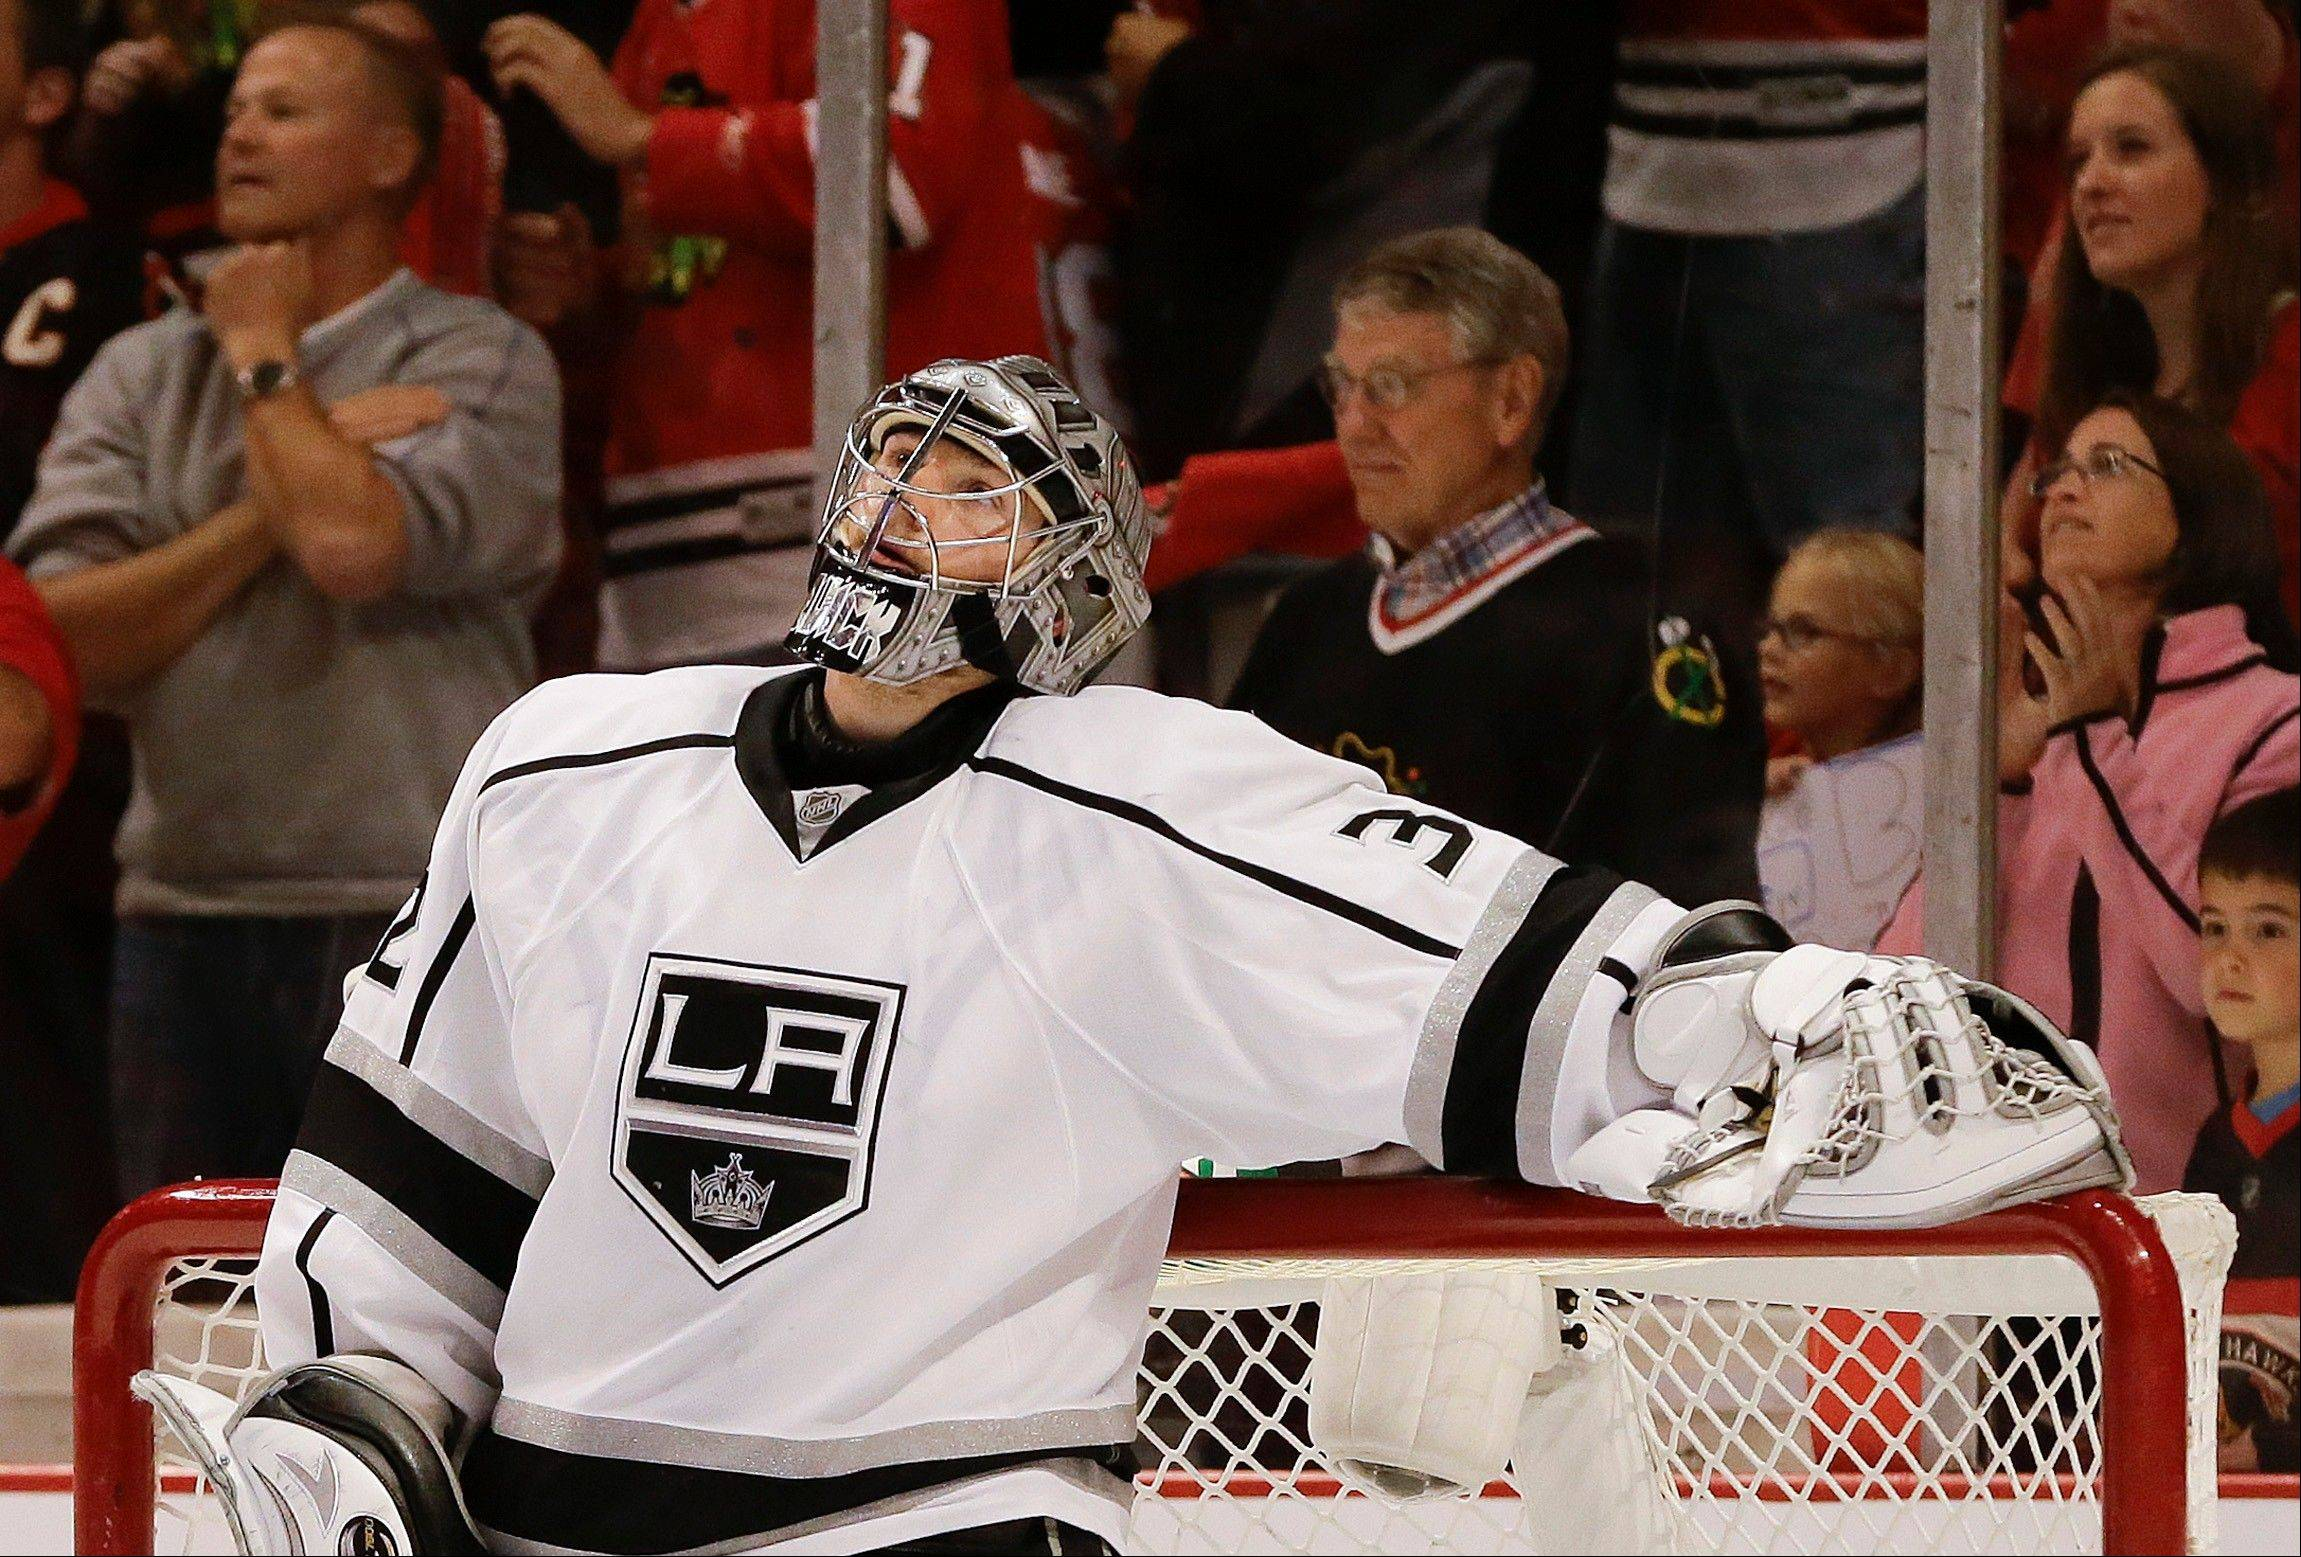 Los Angeles Kings goalie Jonathan Quick looks up at the scoreboard after a goal by the Chicago Blackhawks in the second period of Game 1 of the NHL hockey Stanley Cup Western Conference finals, Saturday, June 1, 2013, in Chicago.